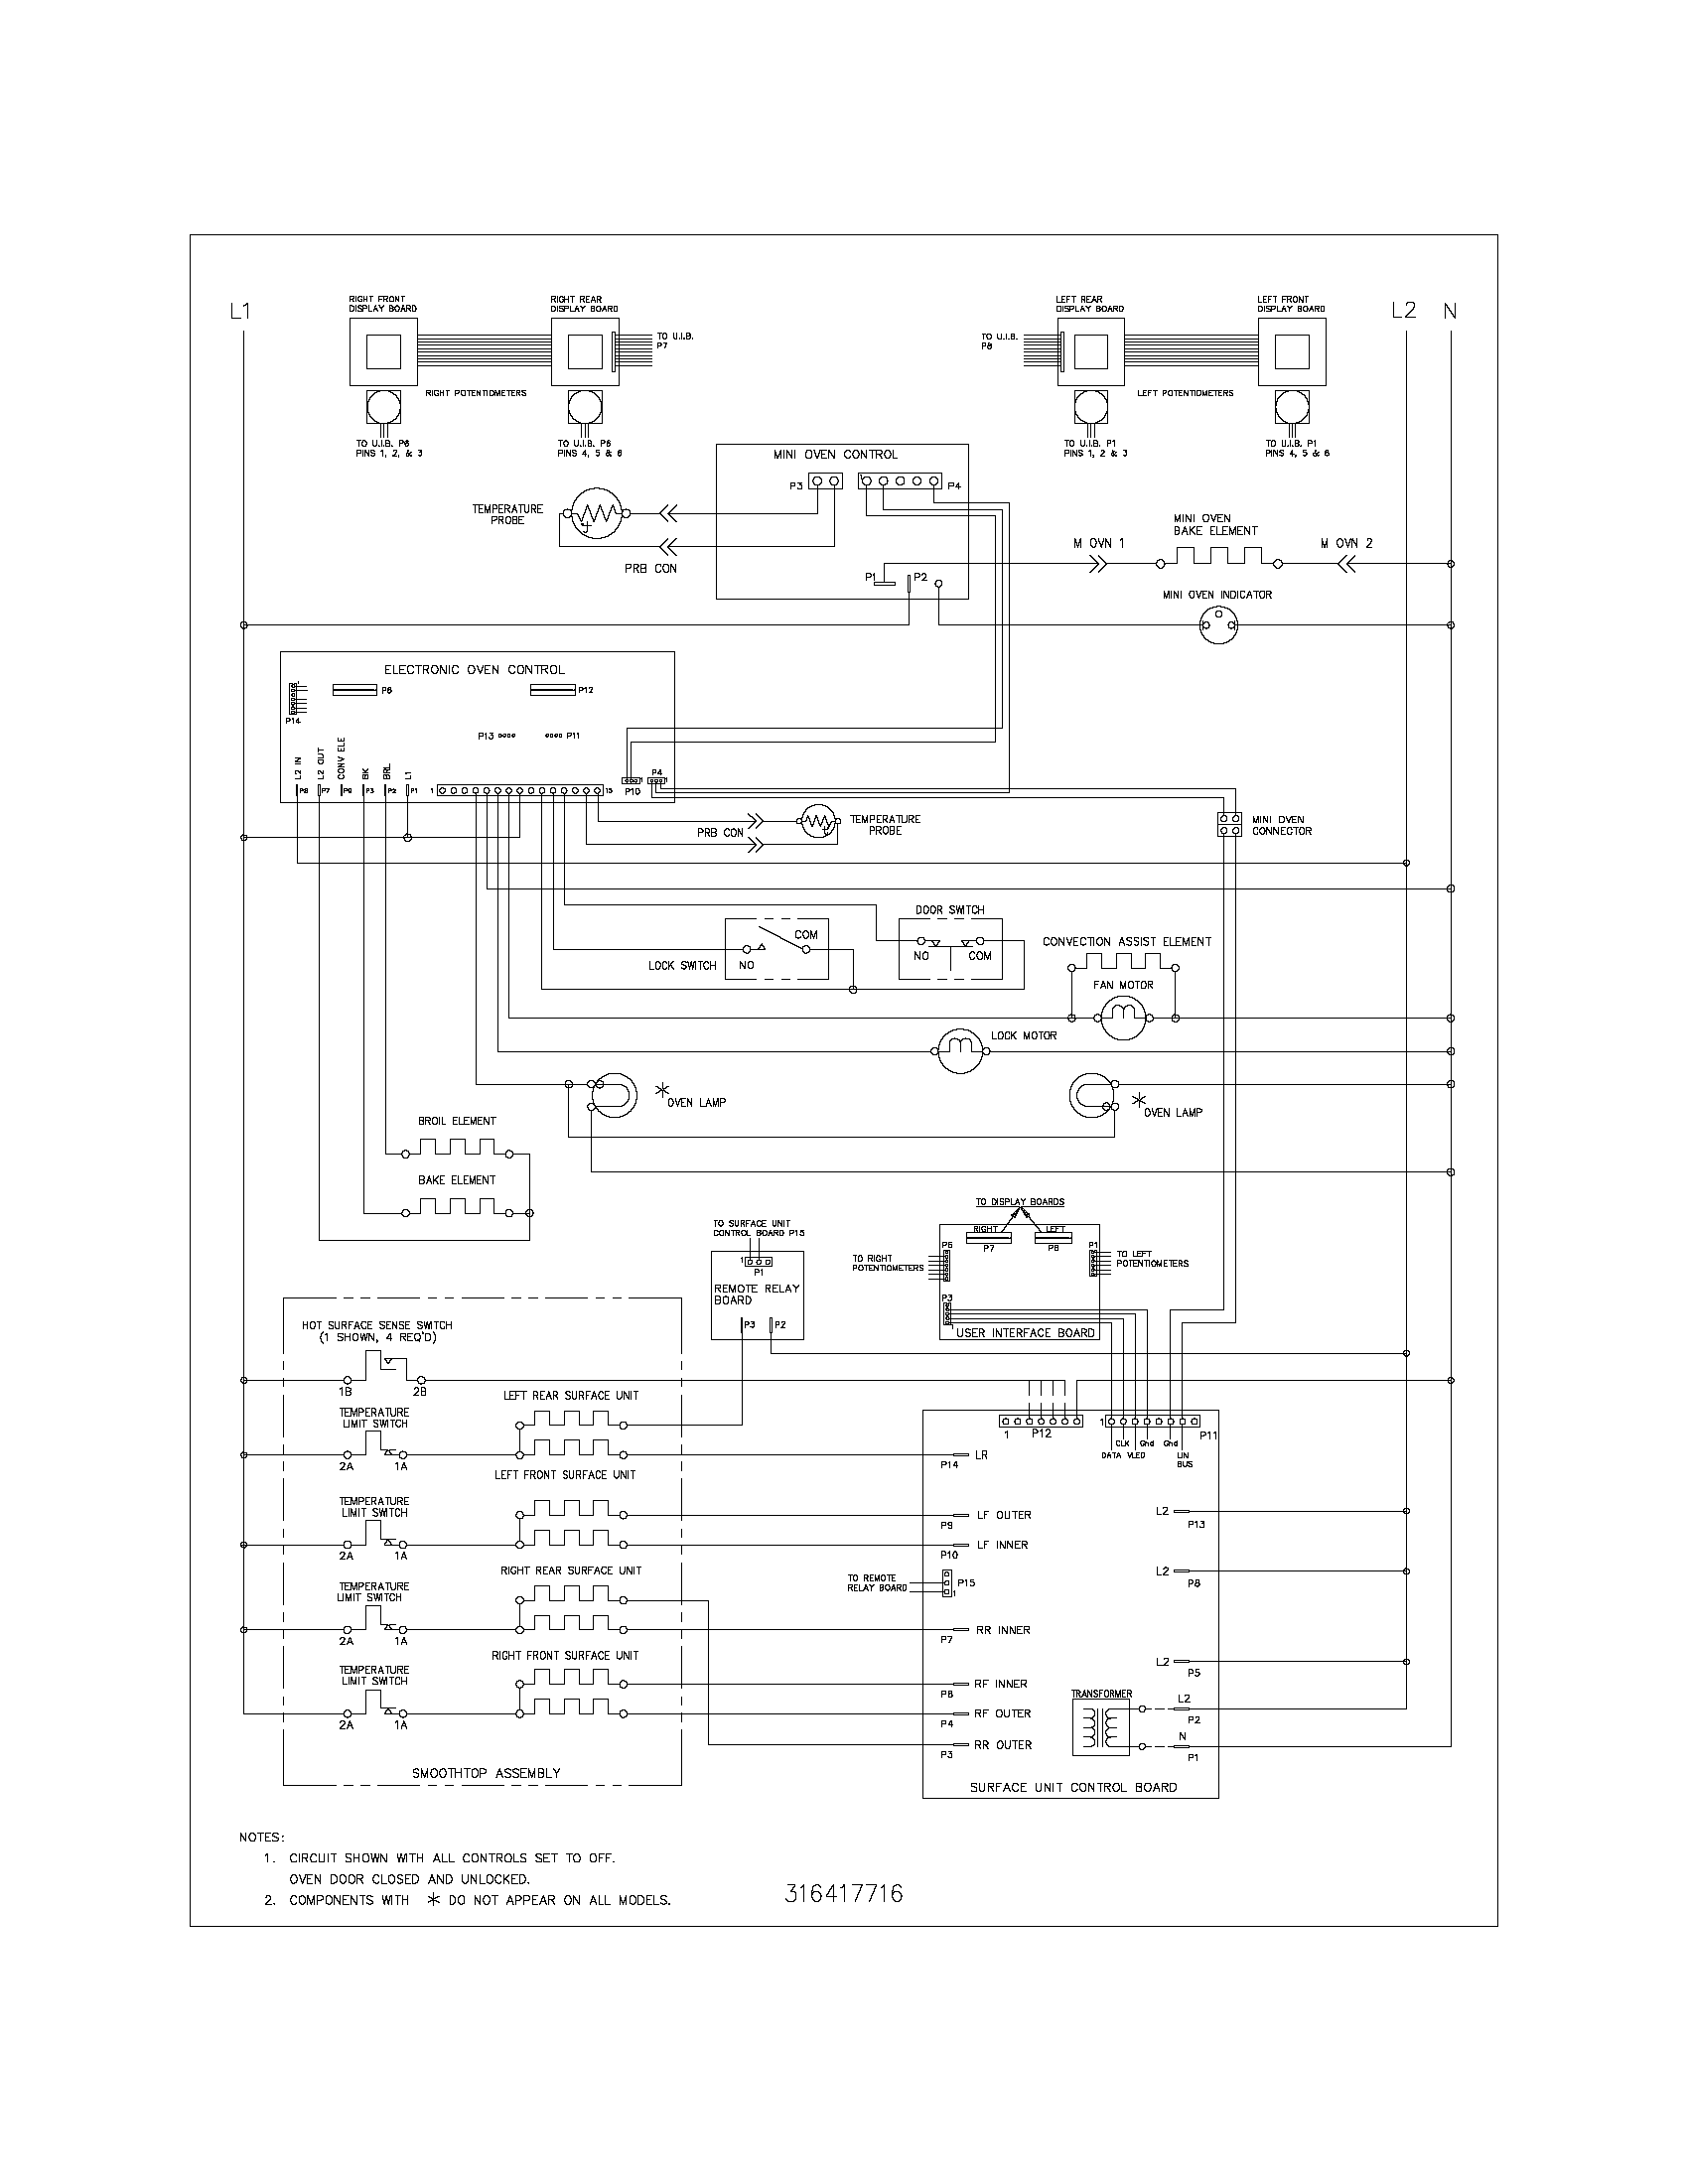 fire truck wiring diagram free picture schematic tt 4470  electric fire pump schematics get free image about wiring  electric fire pump schematics get free